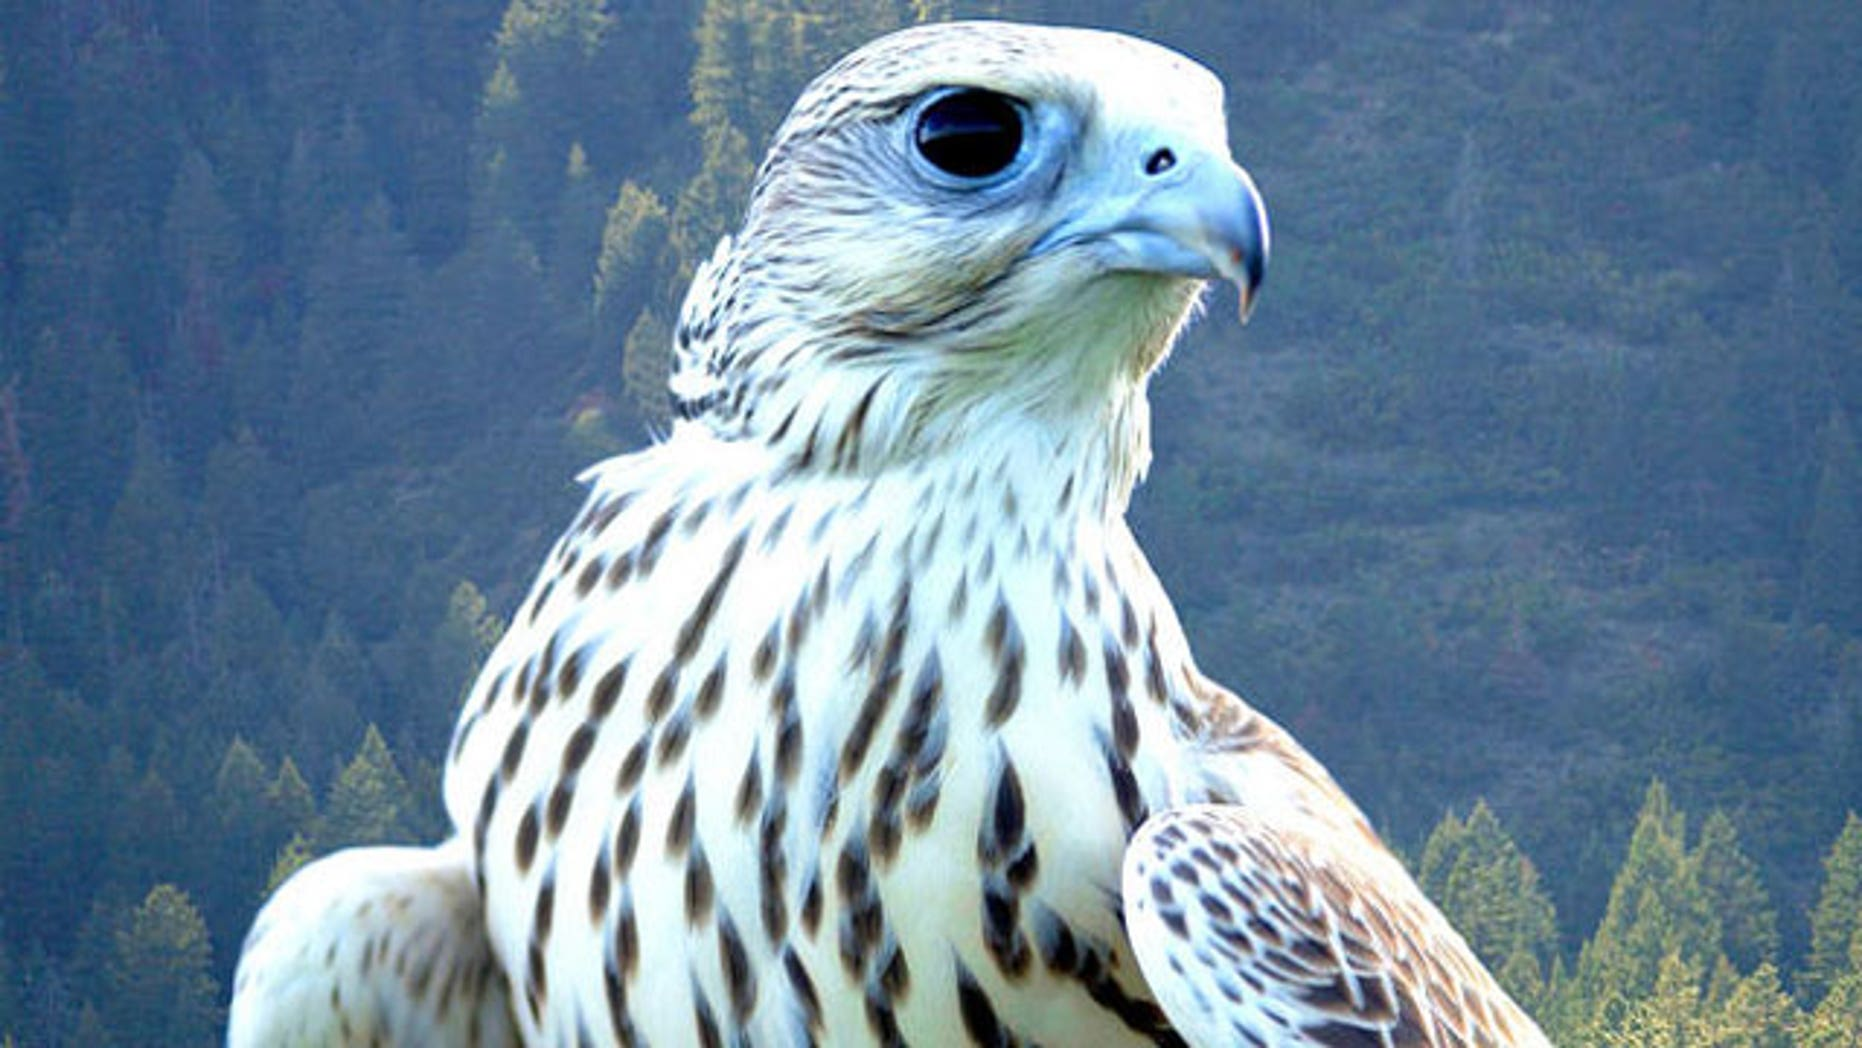 Falcons are mascots for the Air Force Academy's sports teams. One such bird was injured during a recent visit to the U.S. Military Academy at West Point, N.Y. (Associated Press)